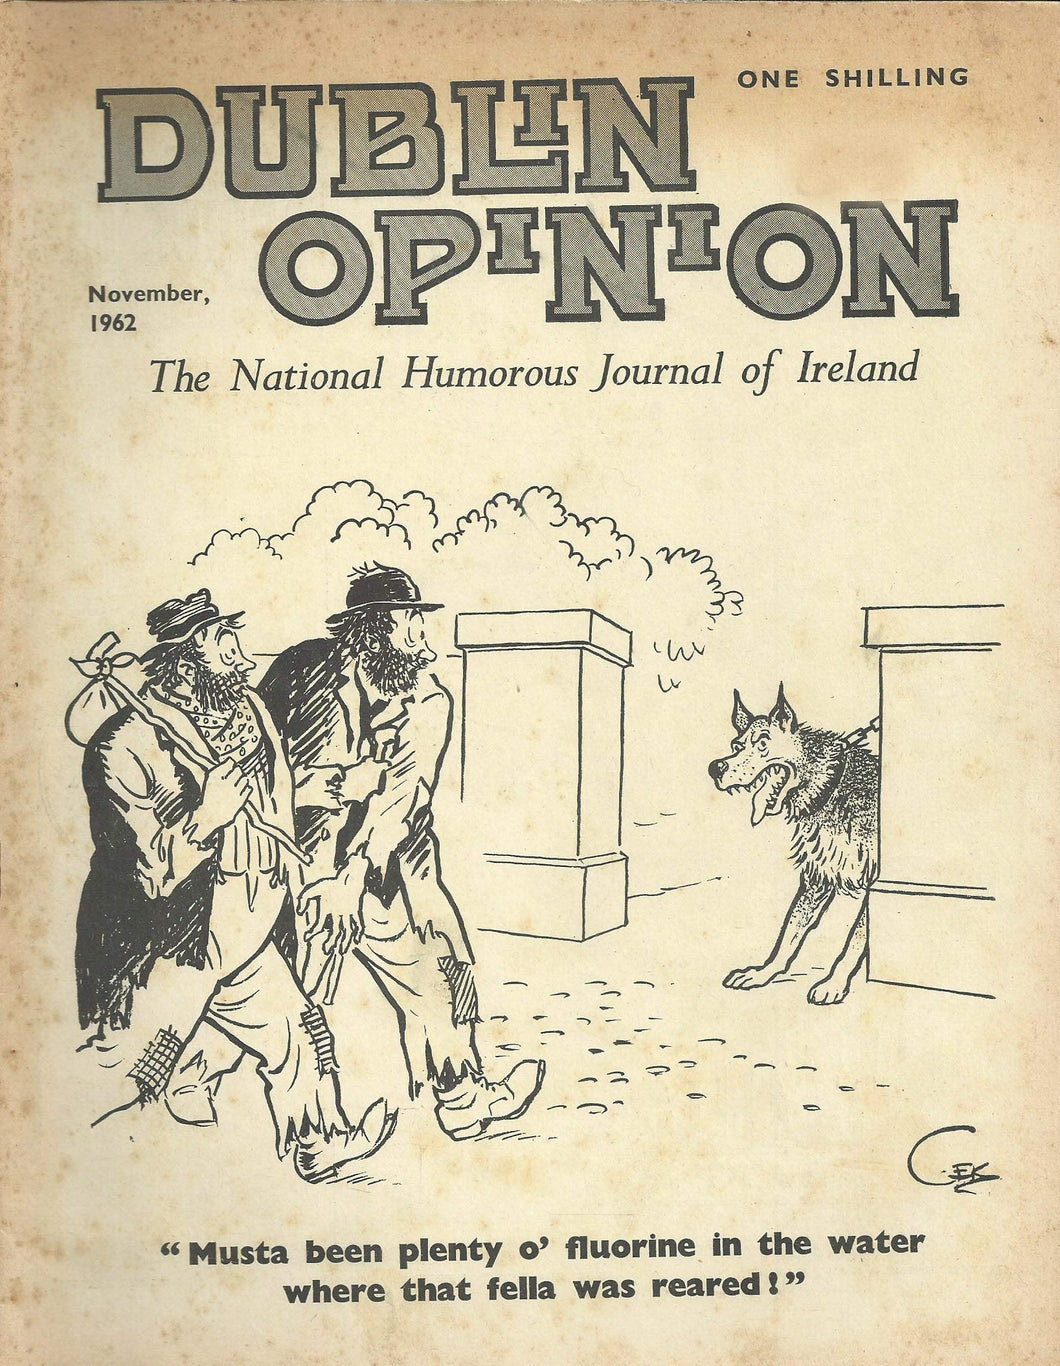 Dublin Opinion - November, 1962 - The National Humorous Journal of Ireland